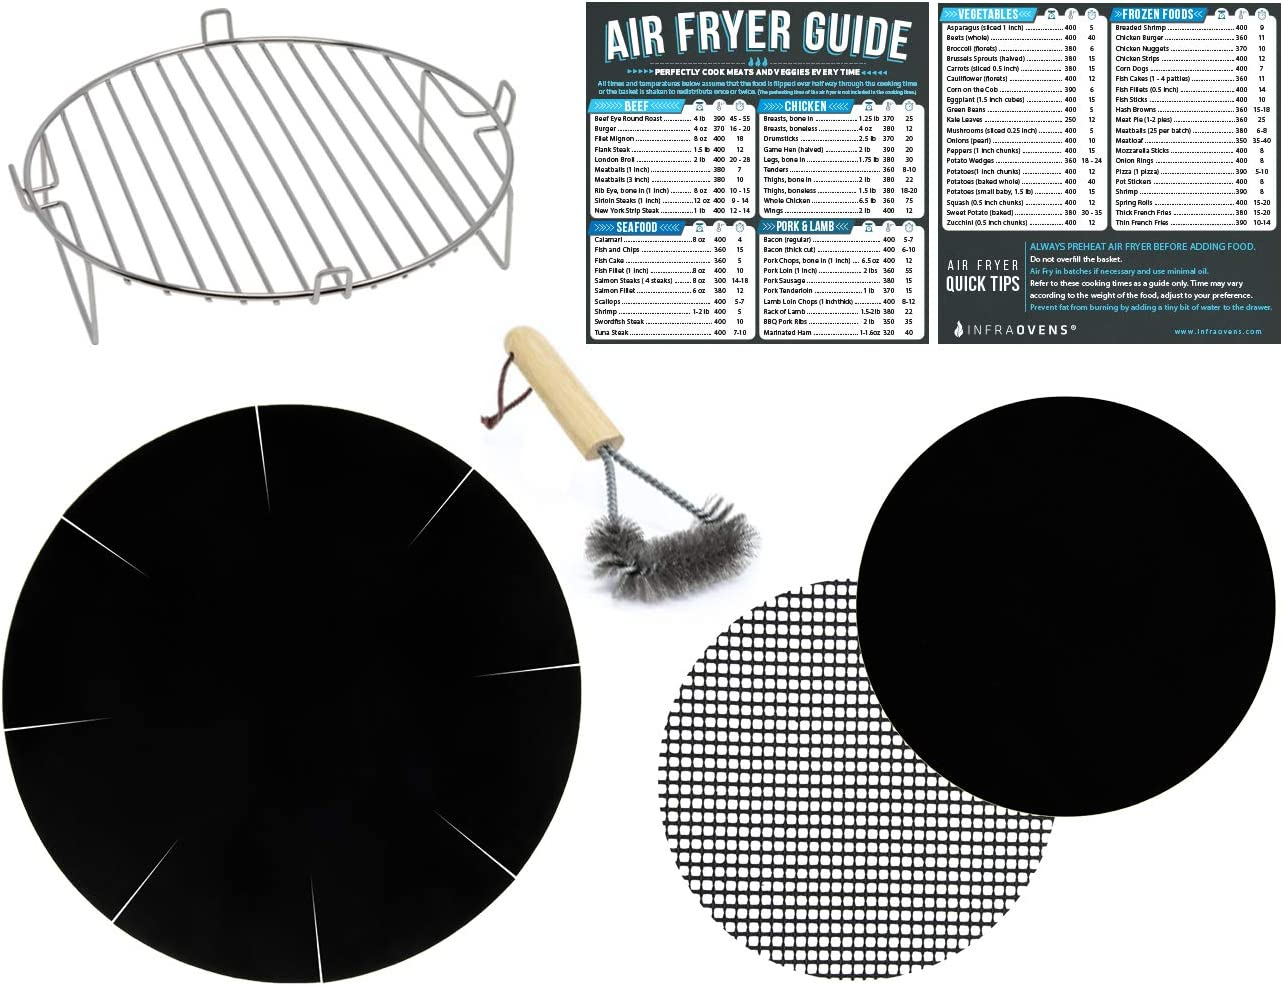 Air Fryer Rack Accessories Compatible with Costzon 4.8 QT, Ninja Foodi 8 QT, Posame 4.2 QT, Ultrean 8.5, Zokop 3.7 | Large Airfryer Stainless Steel Round Accessory + Cooking Times Reference Guides